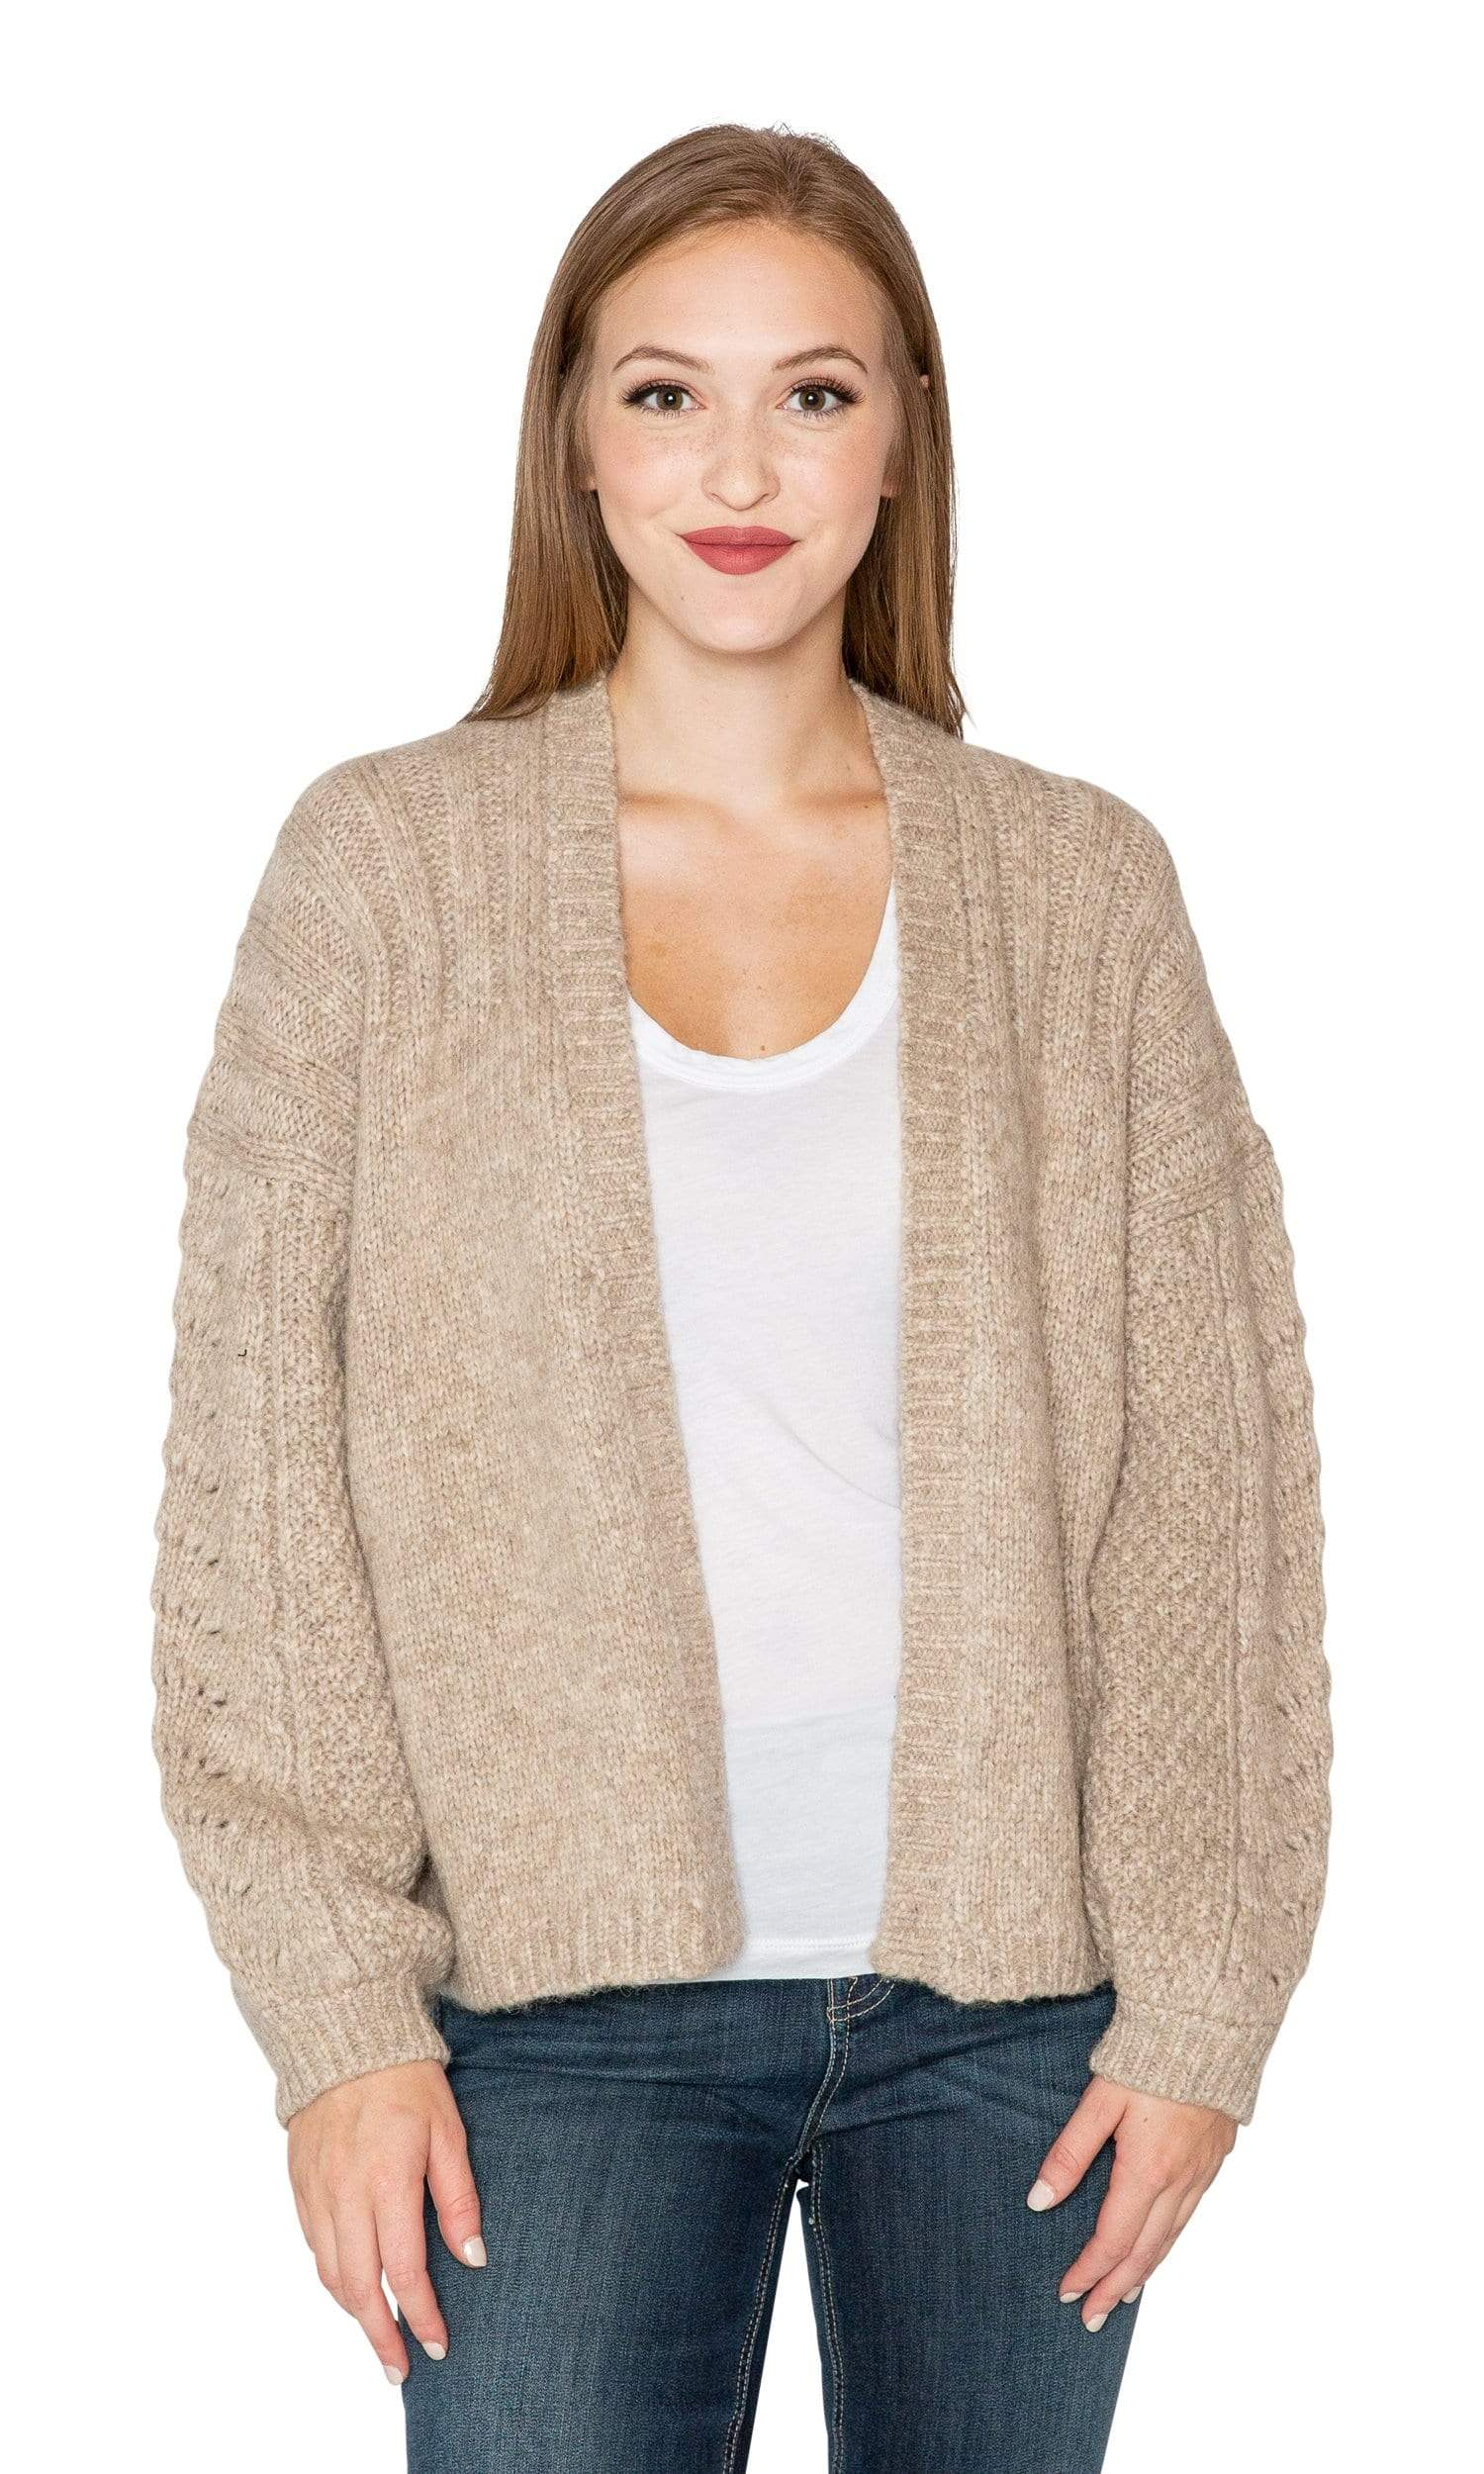 Velvet by Graham & Spencer Beverlee Alpaca Open Cardigan Sweater